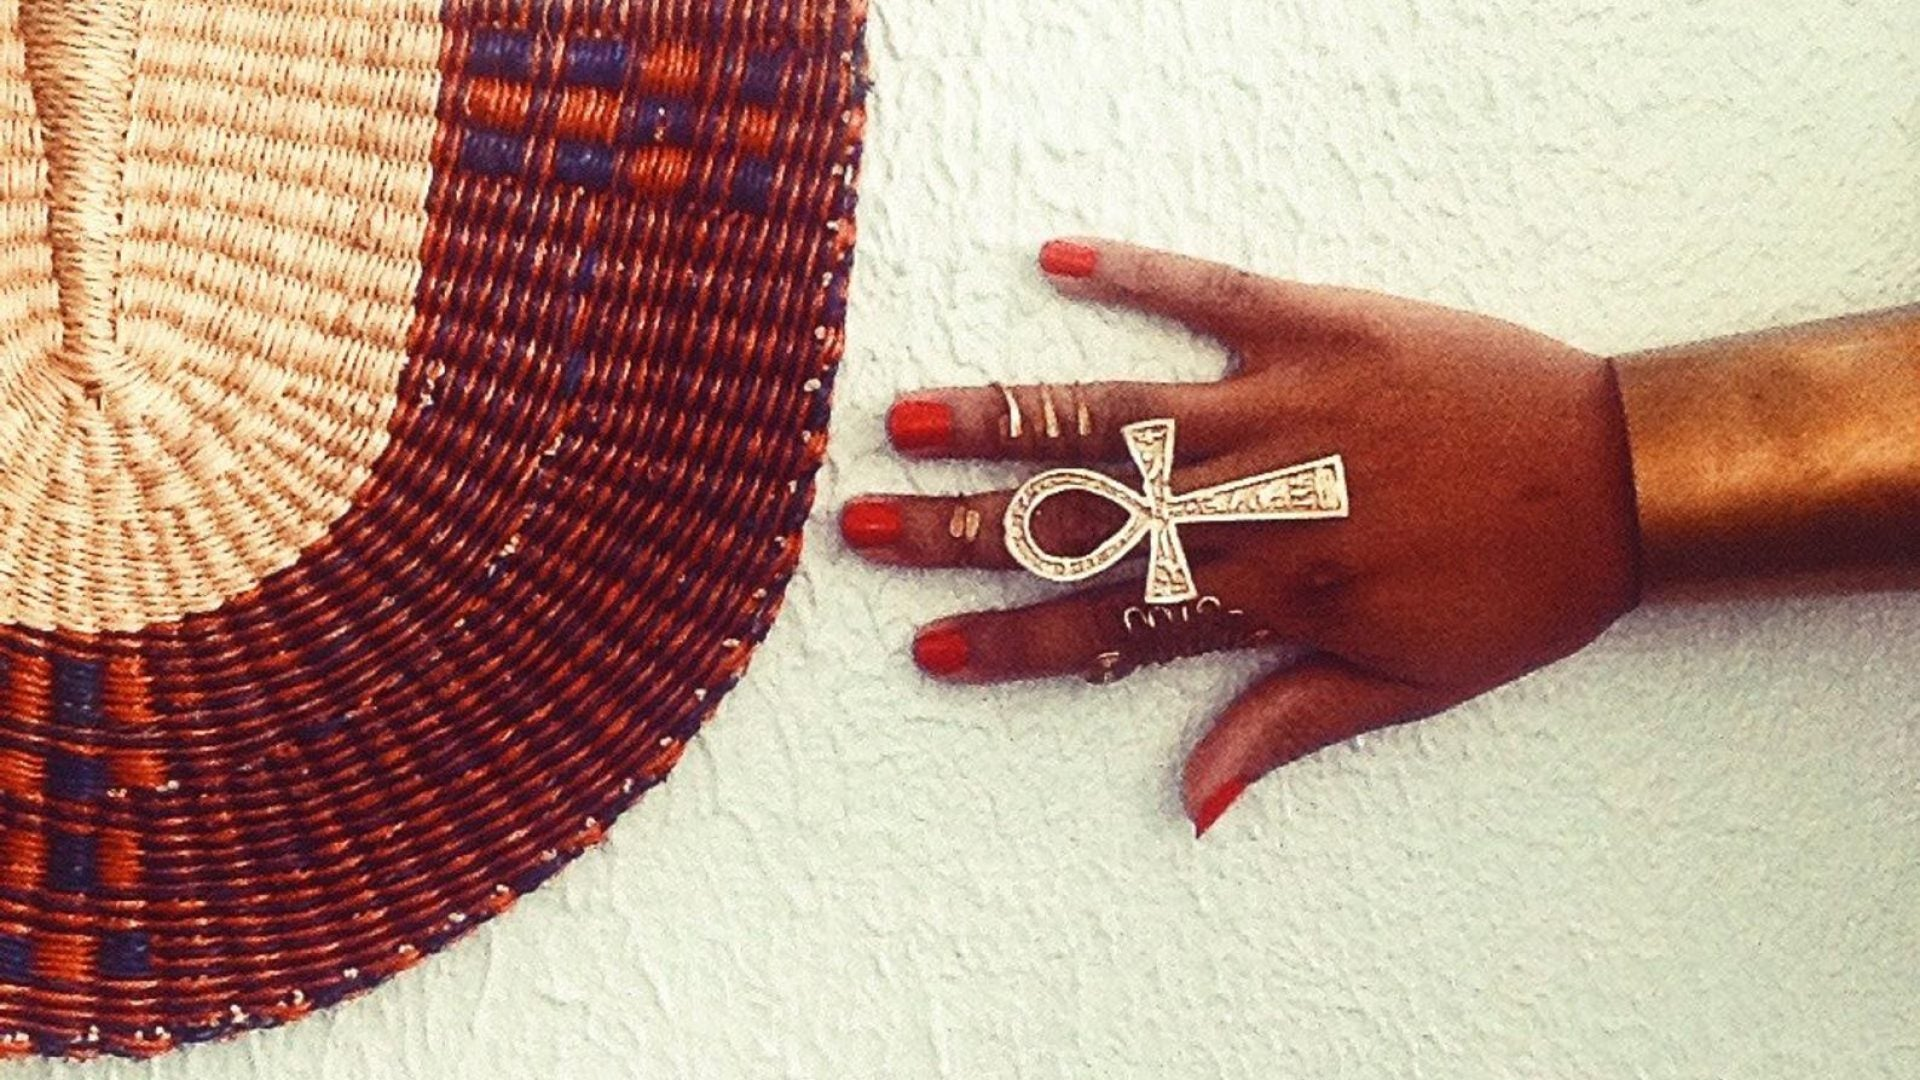 I'm Stepping My Jewelry Game Up With These Etsy Finds by Black Women